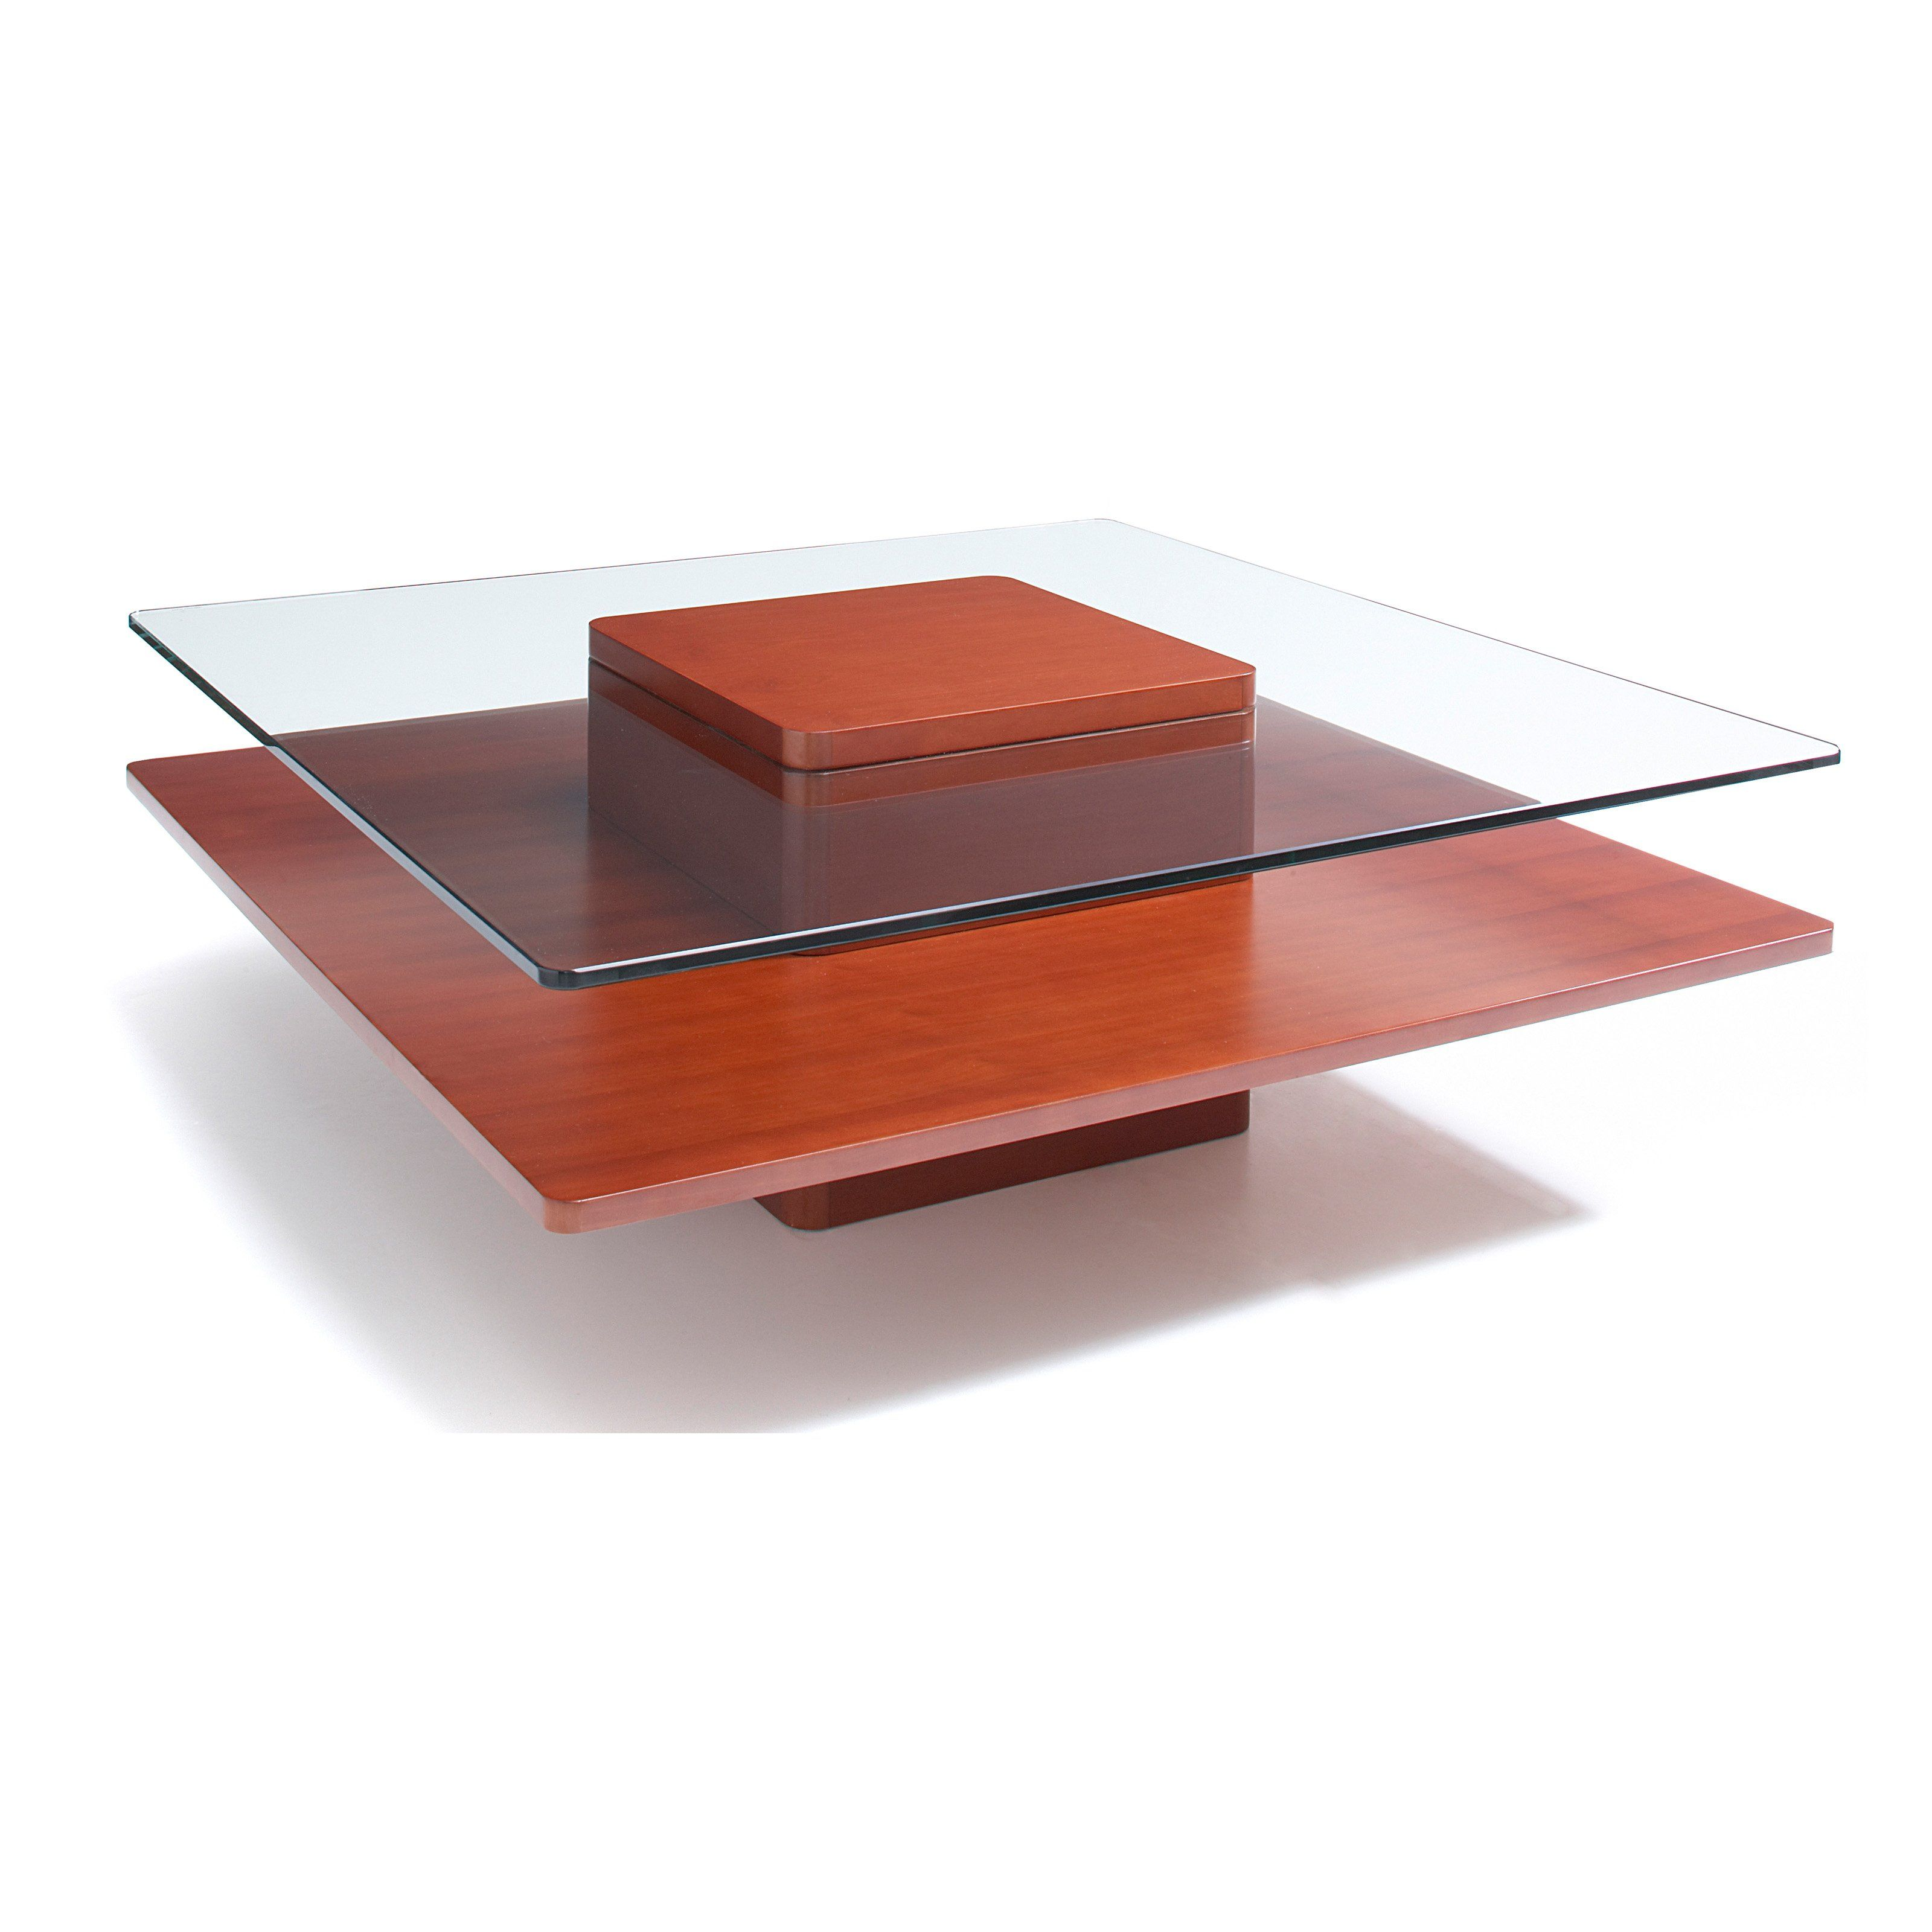 Have To Have It Jesper Pure Home Square Cherry Wood And Glass Coffee Table 499 Coffee Table Square Glass Wood Coffee Table Coffee Table [ 3200 x 3200 Pixel ]